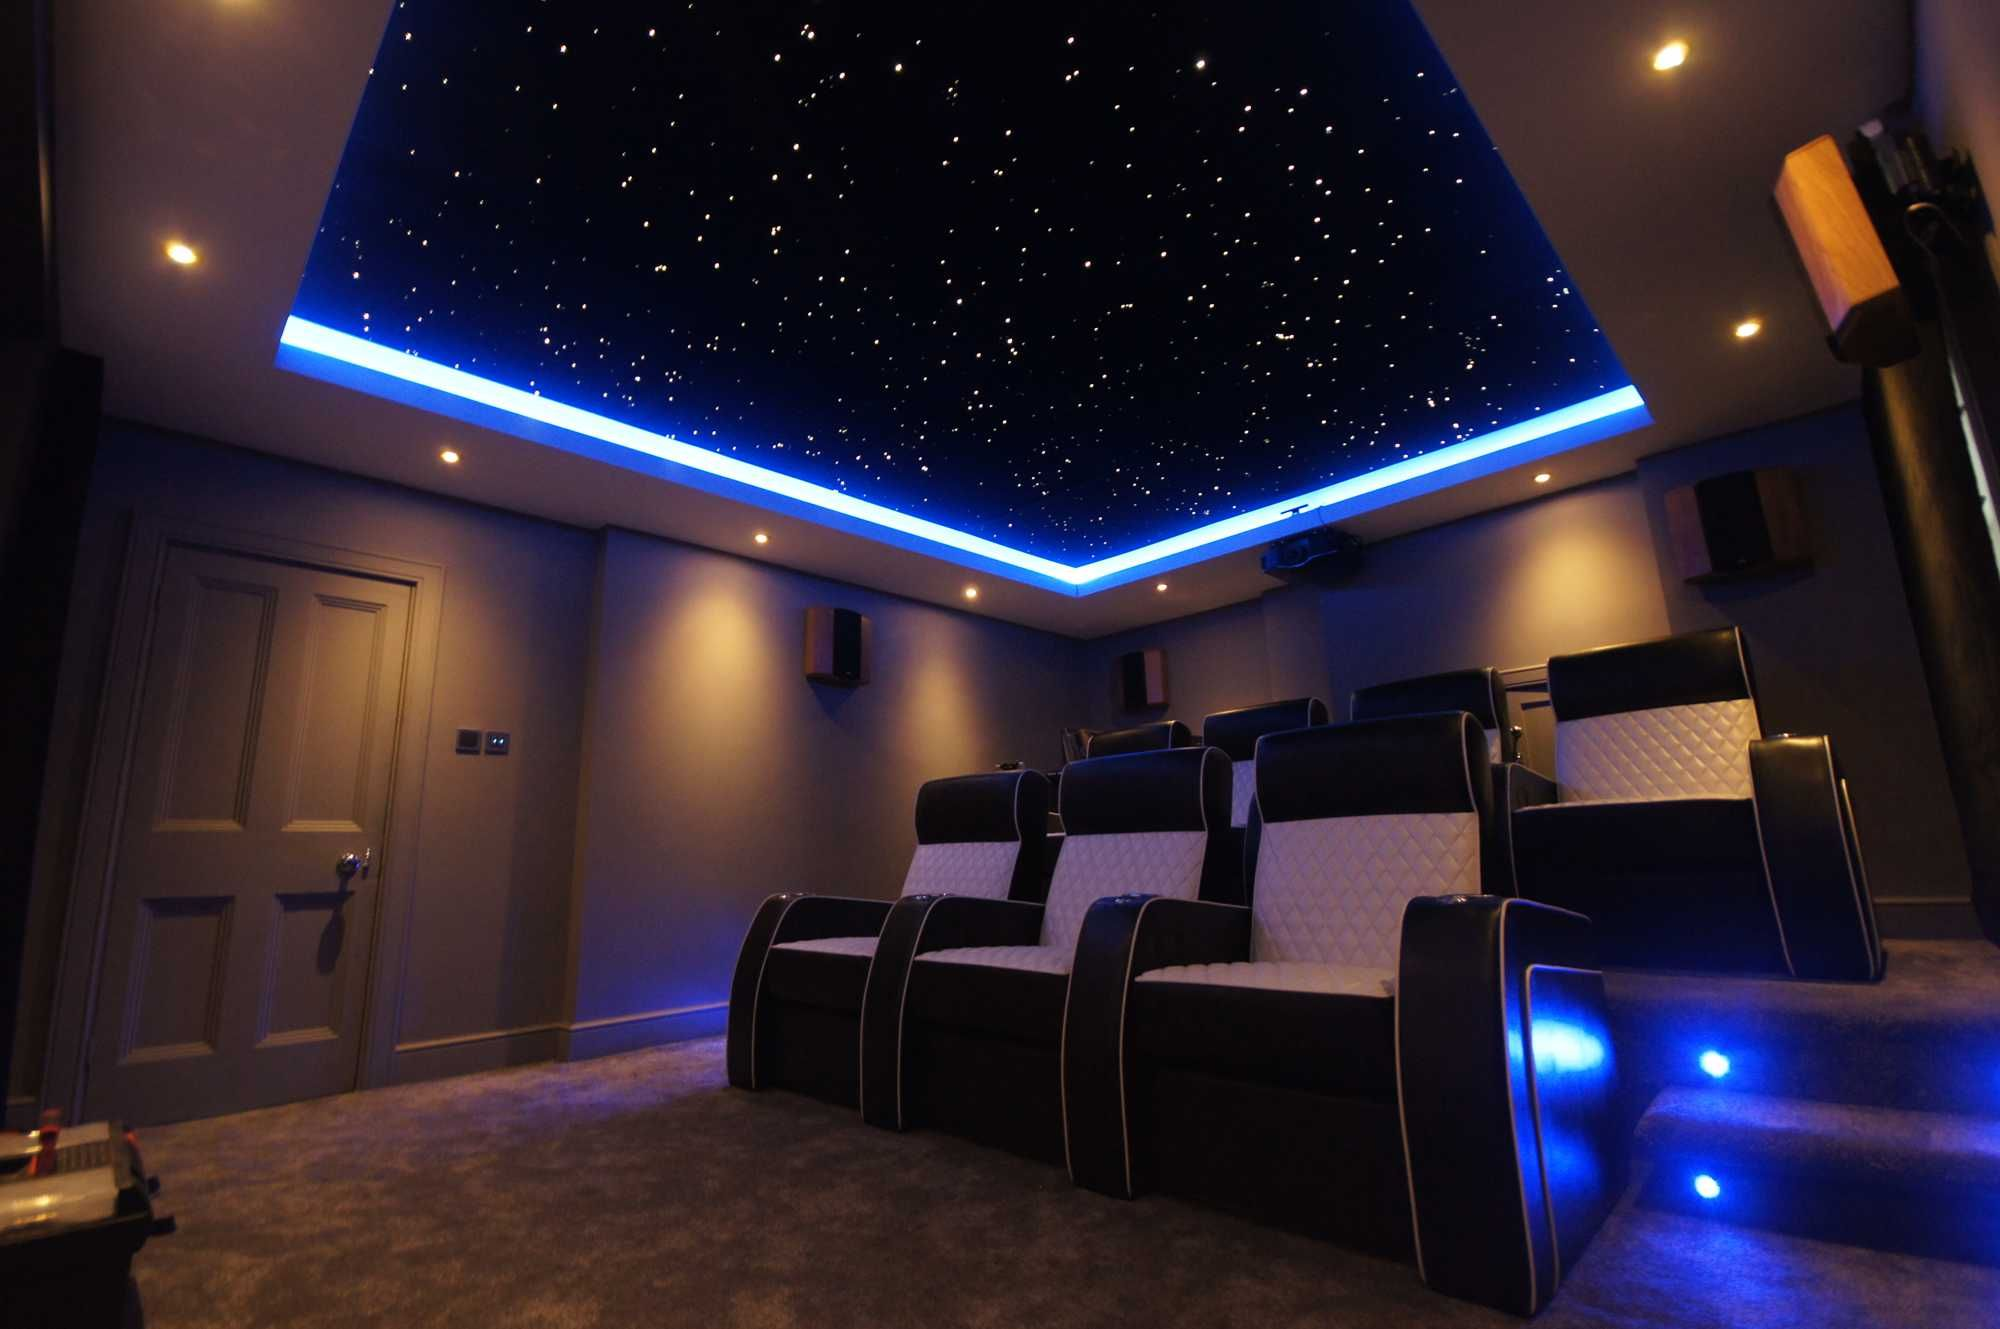 Stars Lights For Ceiling: These Infinity fibre optic star ceiling add the final touch to a home  cinema room,Lighting